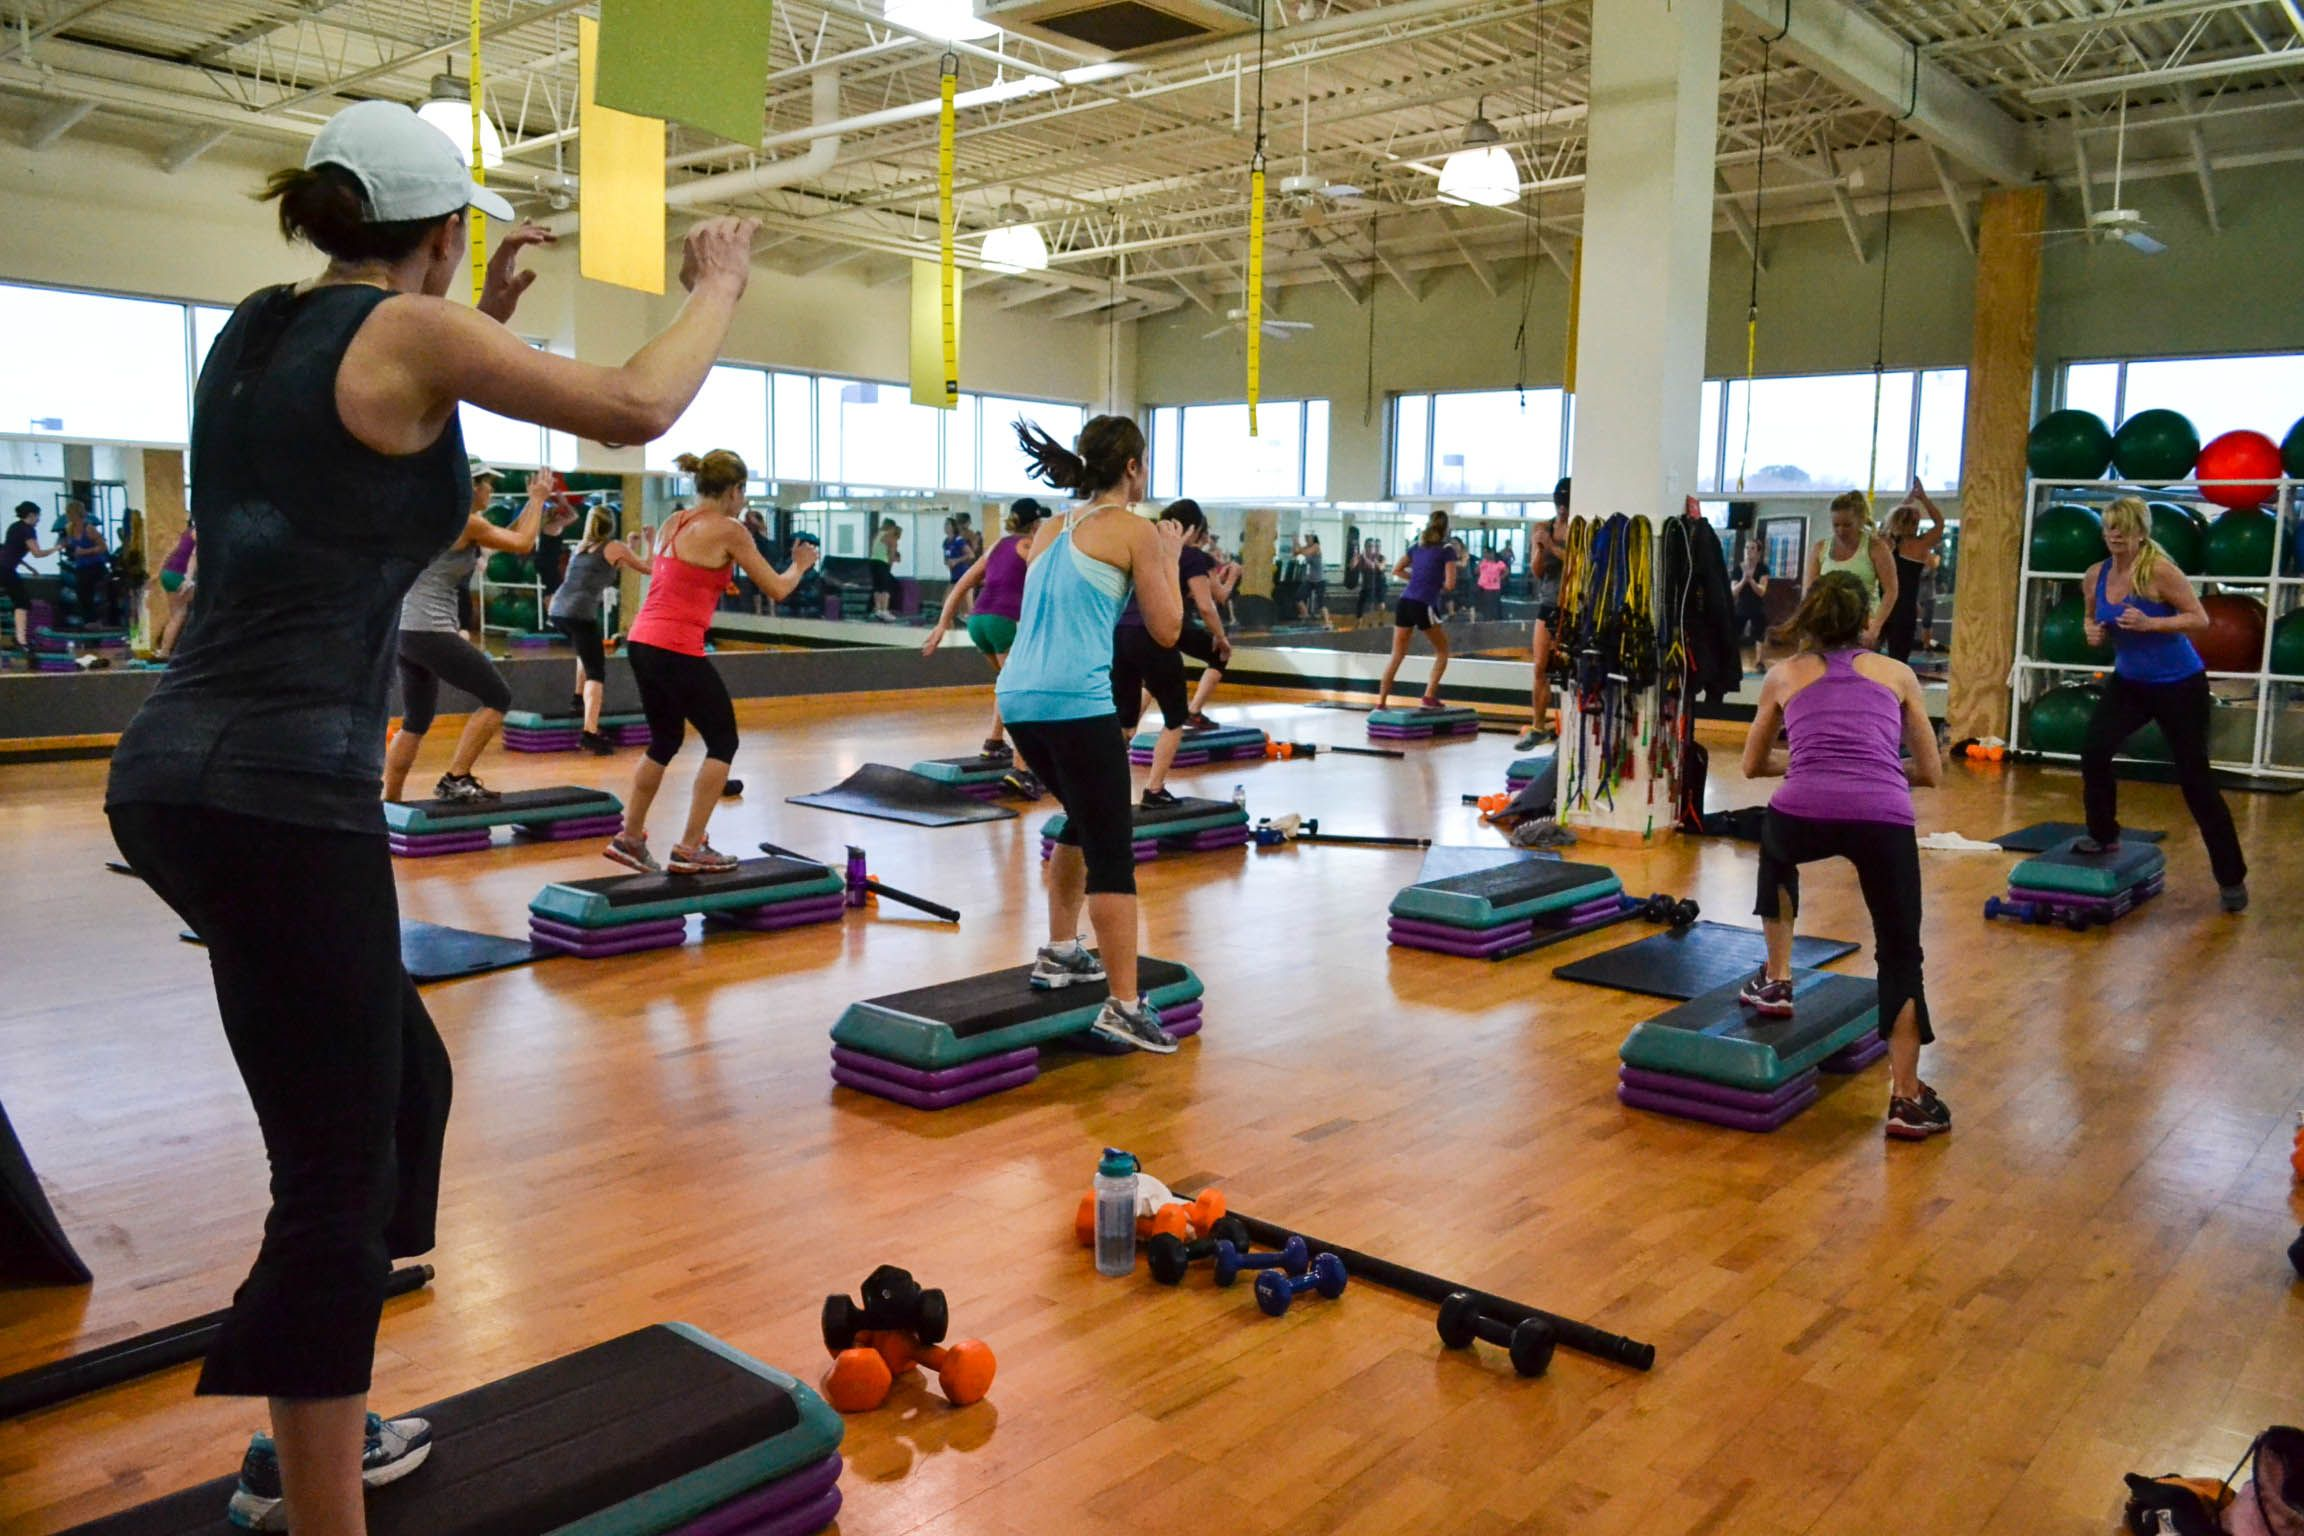 Indoor Tabata Inletfitness Inletfitnesssouth 2gyms1mission Fitness Gym Health Healthylife Virginiabeach Gym Virginia Beach Inlet